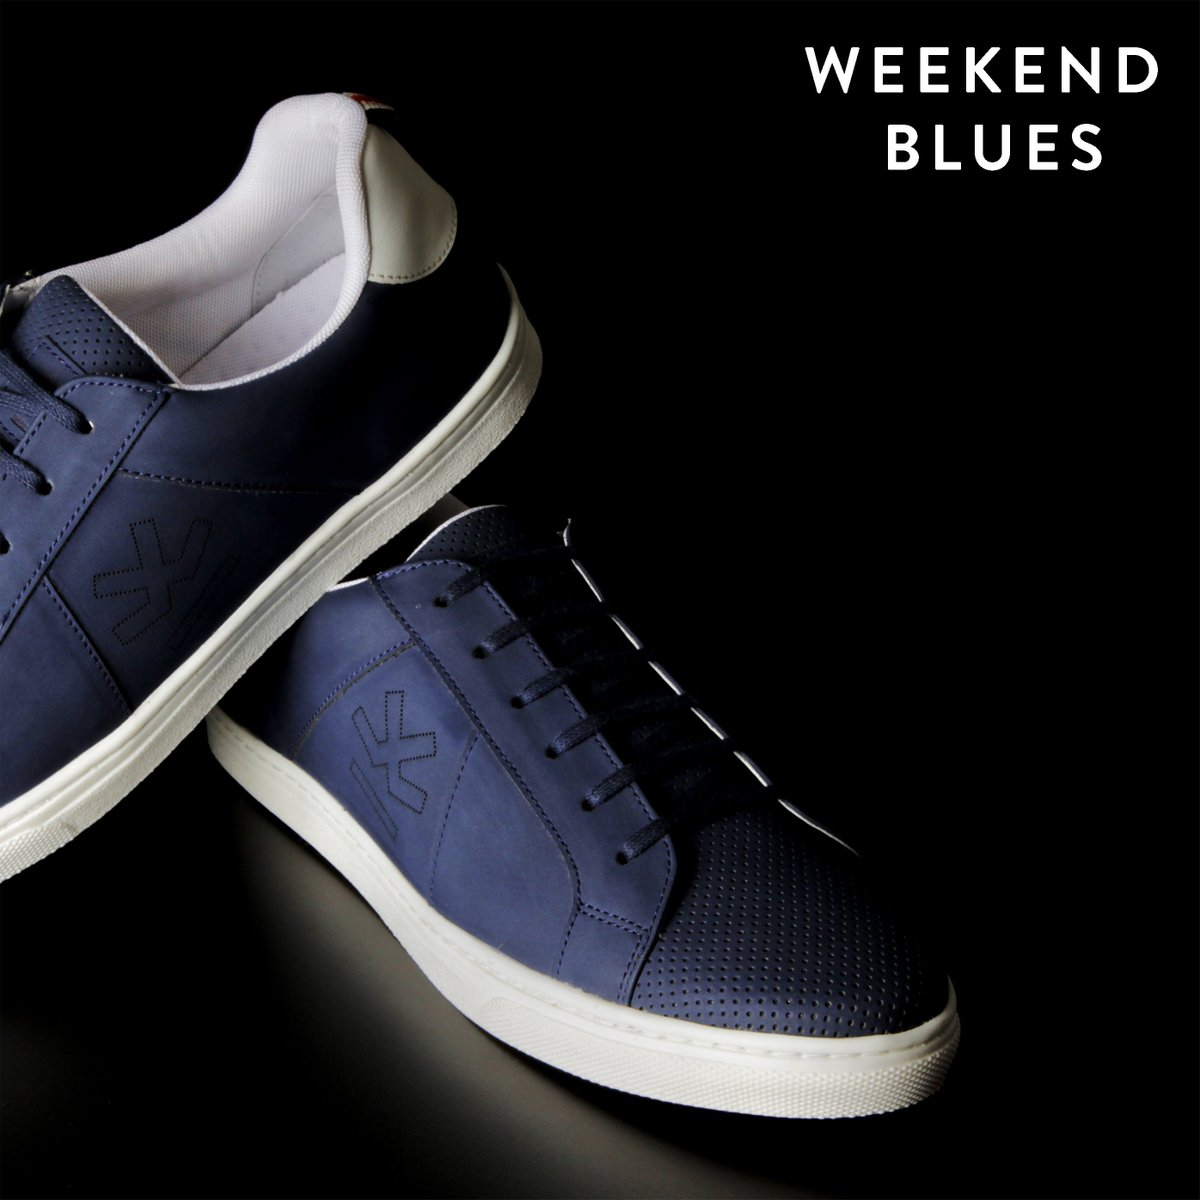 9e112ed1d89 Shop at http   www.wrogn.in .  Shoes  Sneakers  Fashion  Trend  StayWrogn   style  shoestyle  shoesaddict  denim  love  ootd  men  like  streetstyle ...